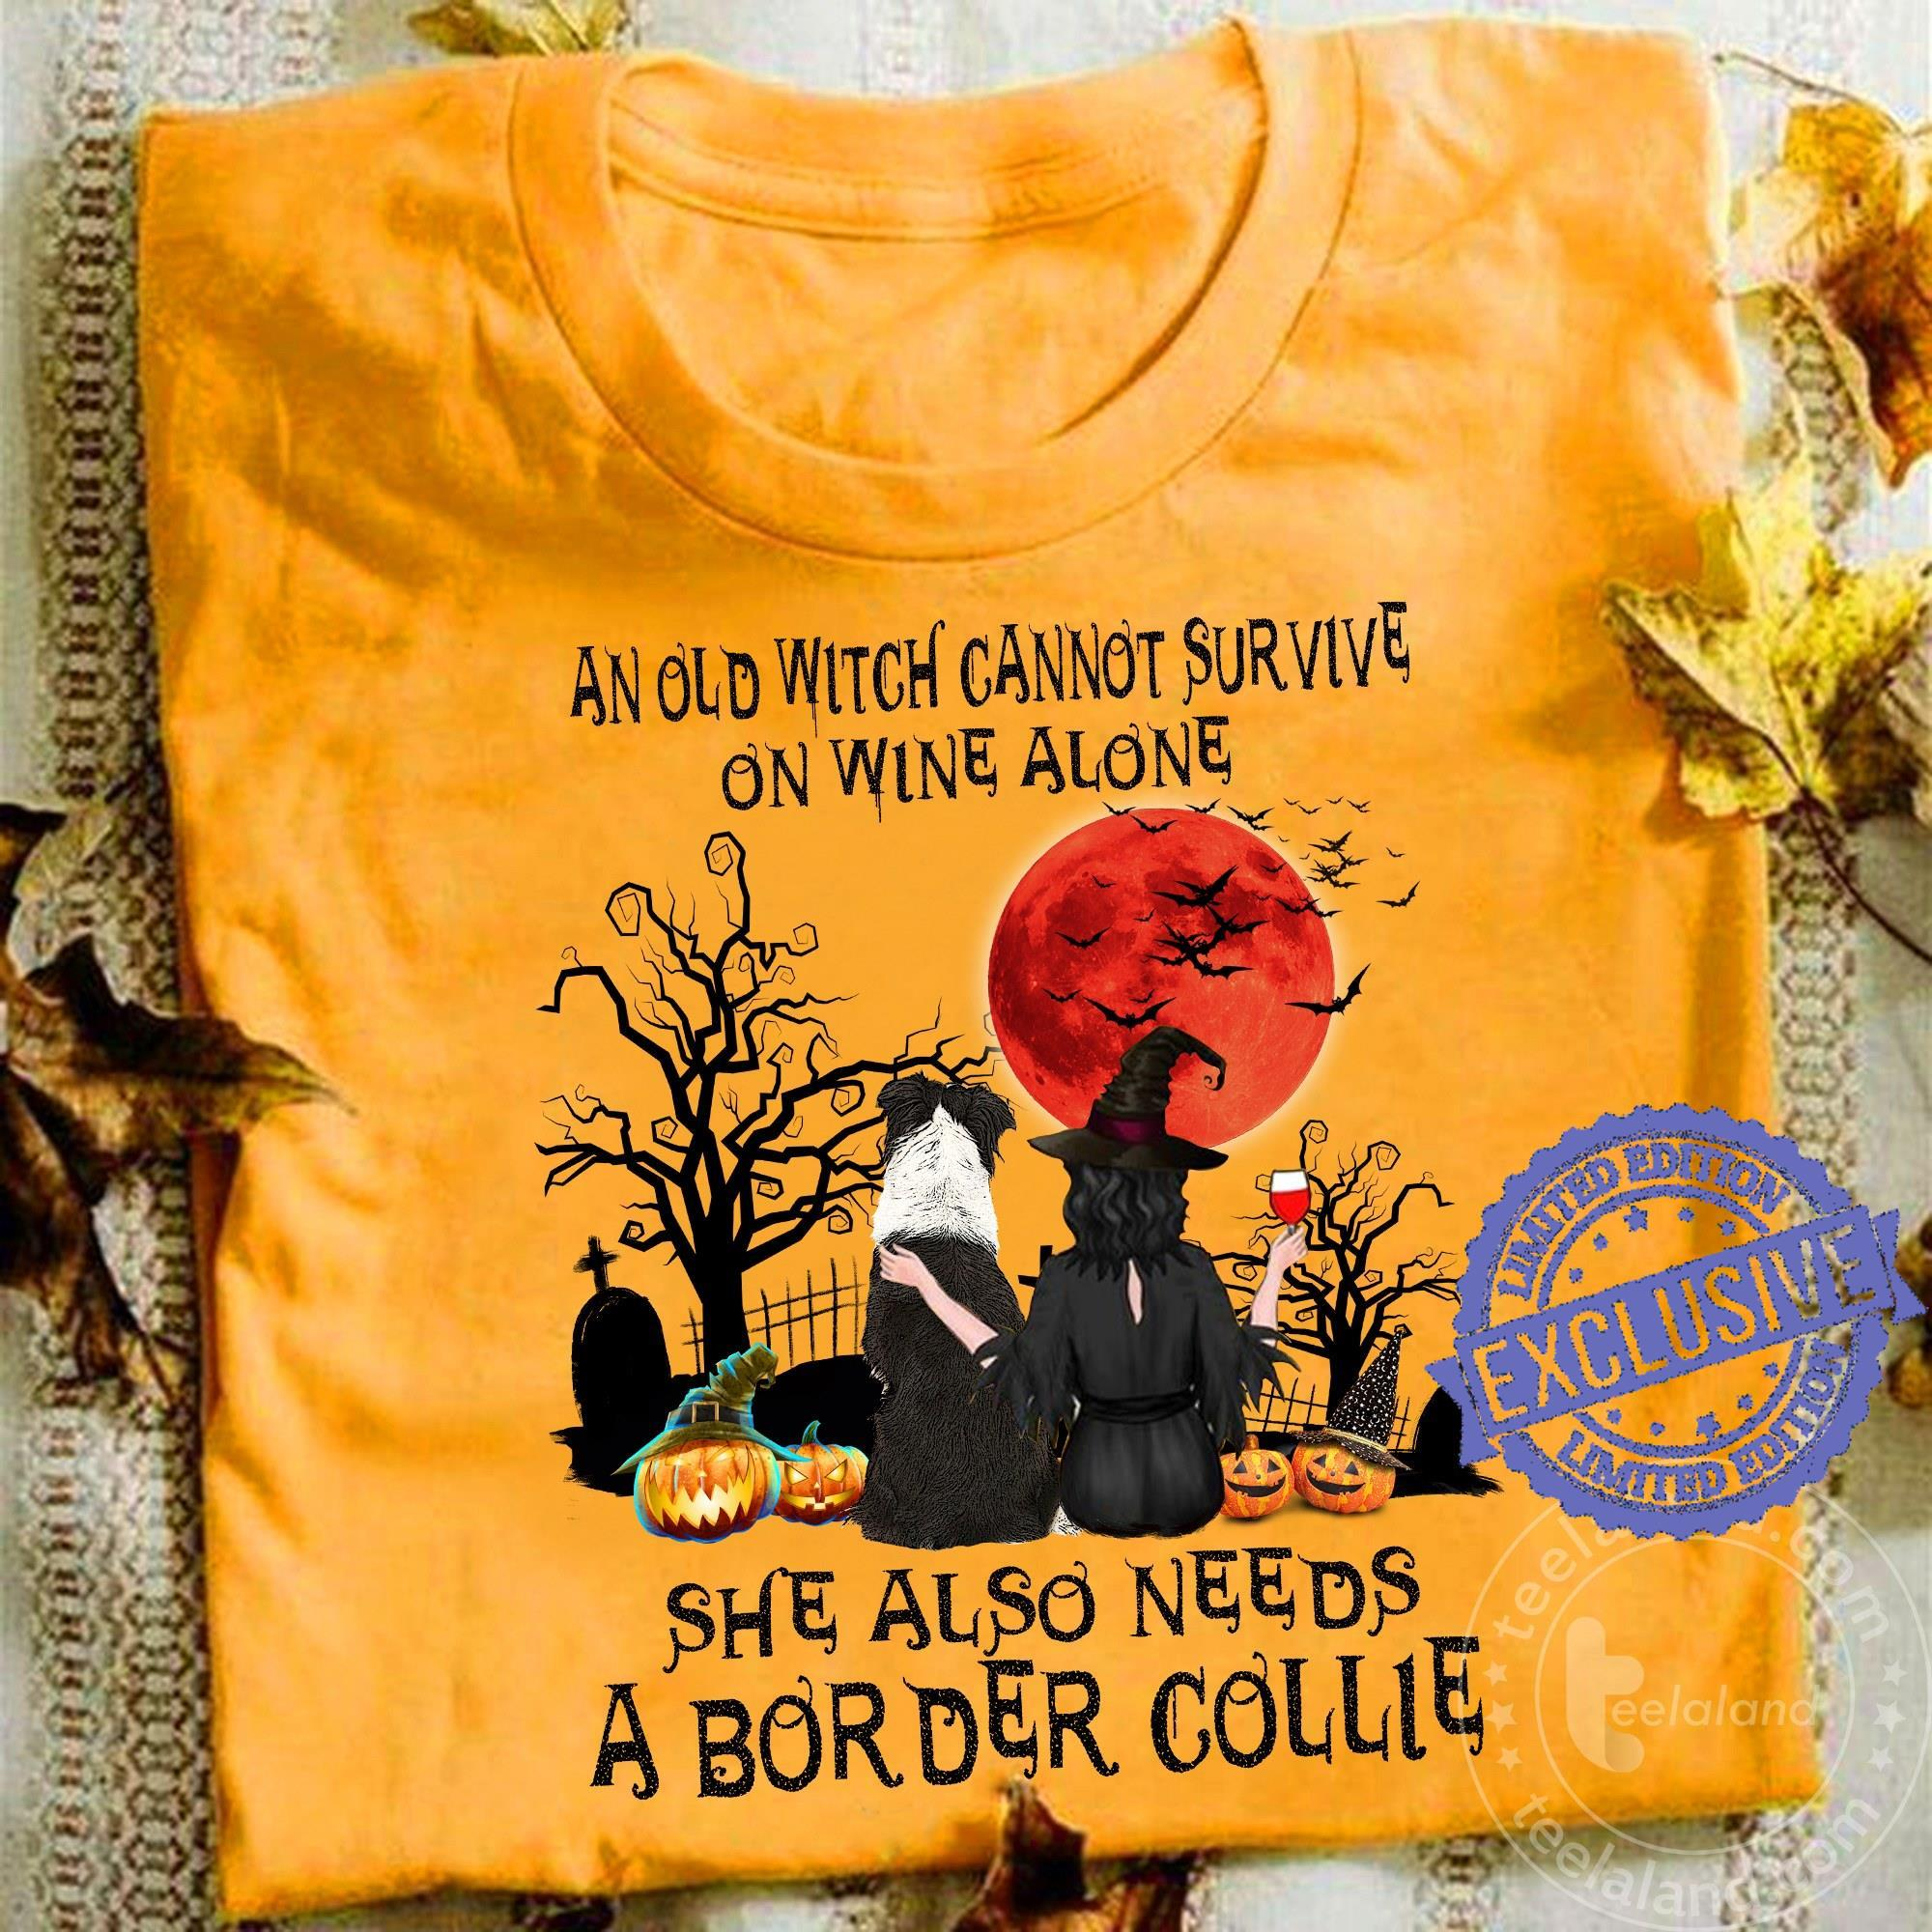 An ols witch cannot survive on wine alone she also needs a bor der collie 2020 shirt